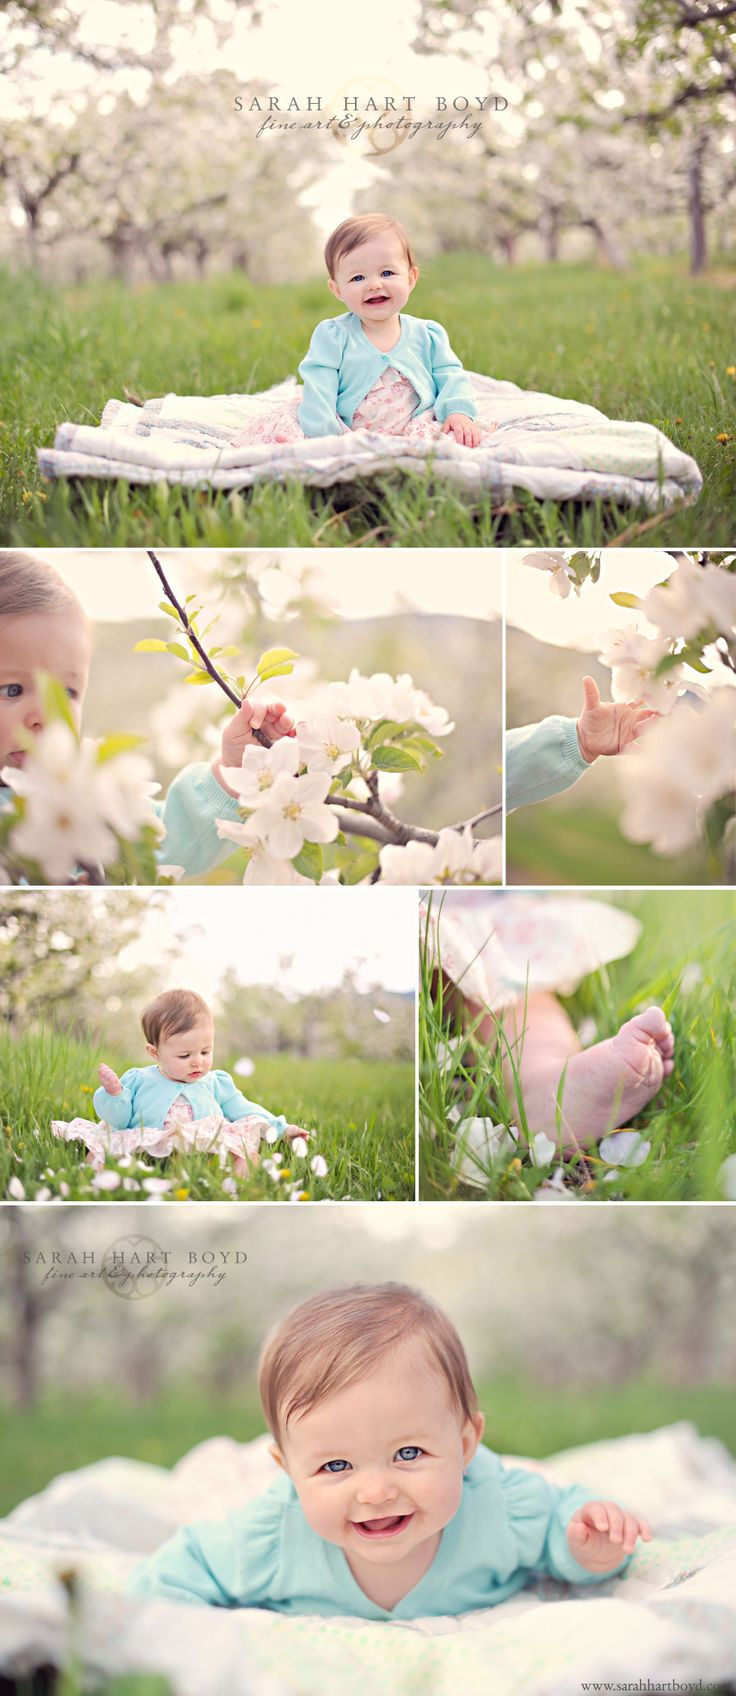 These photos are adorable, especially if your little one was born in the spring!